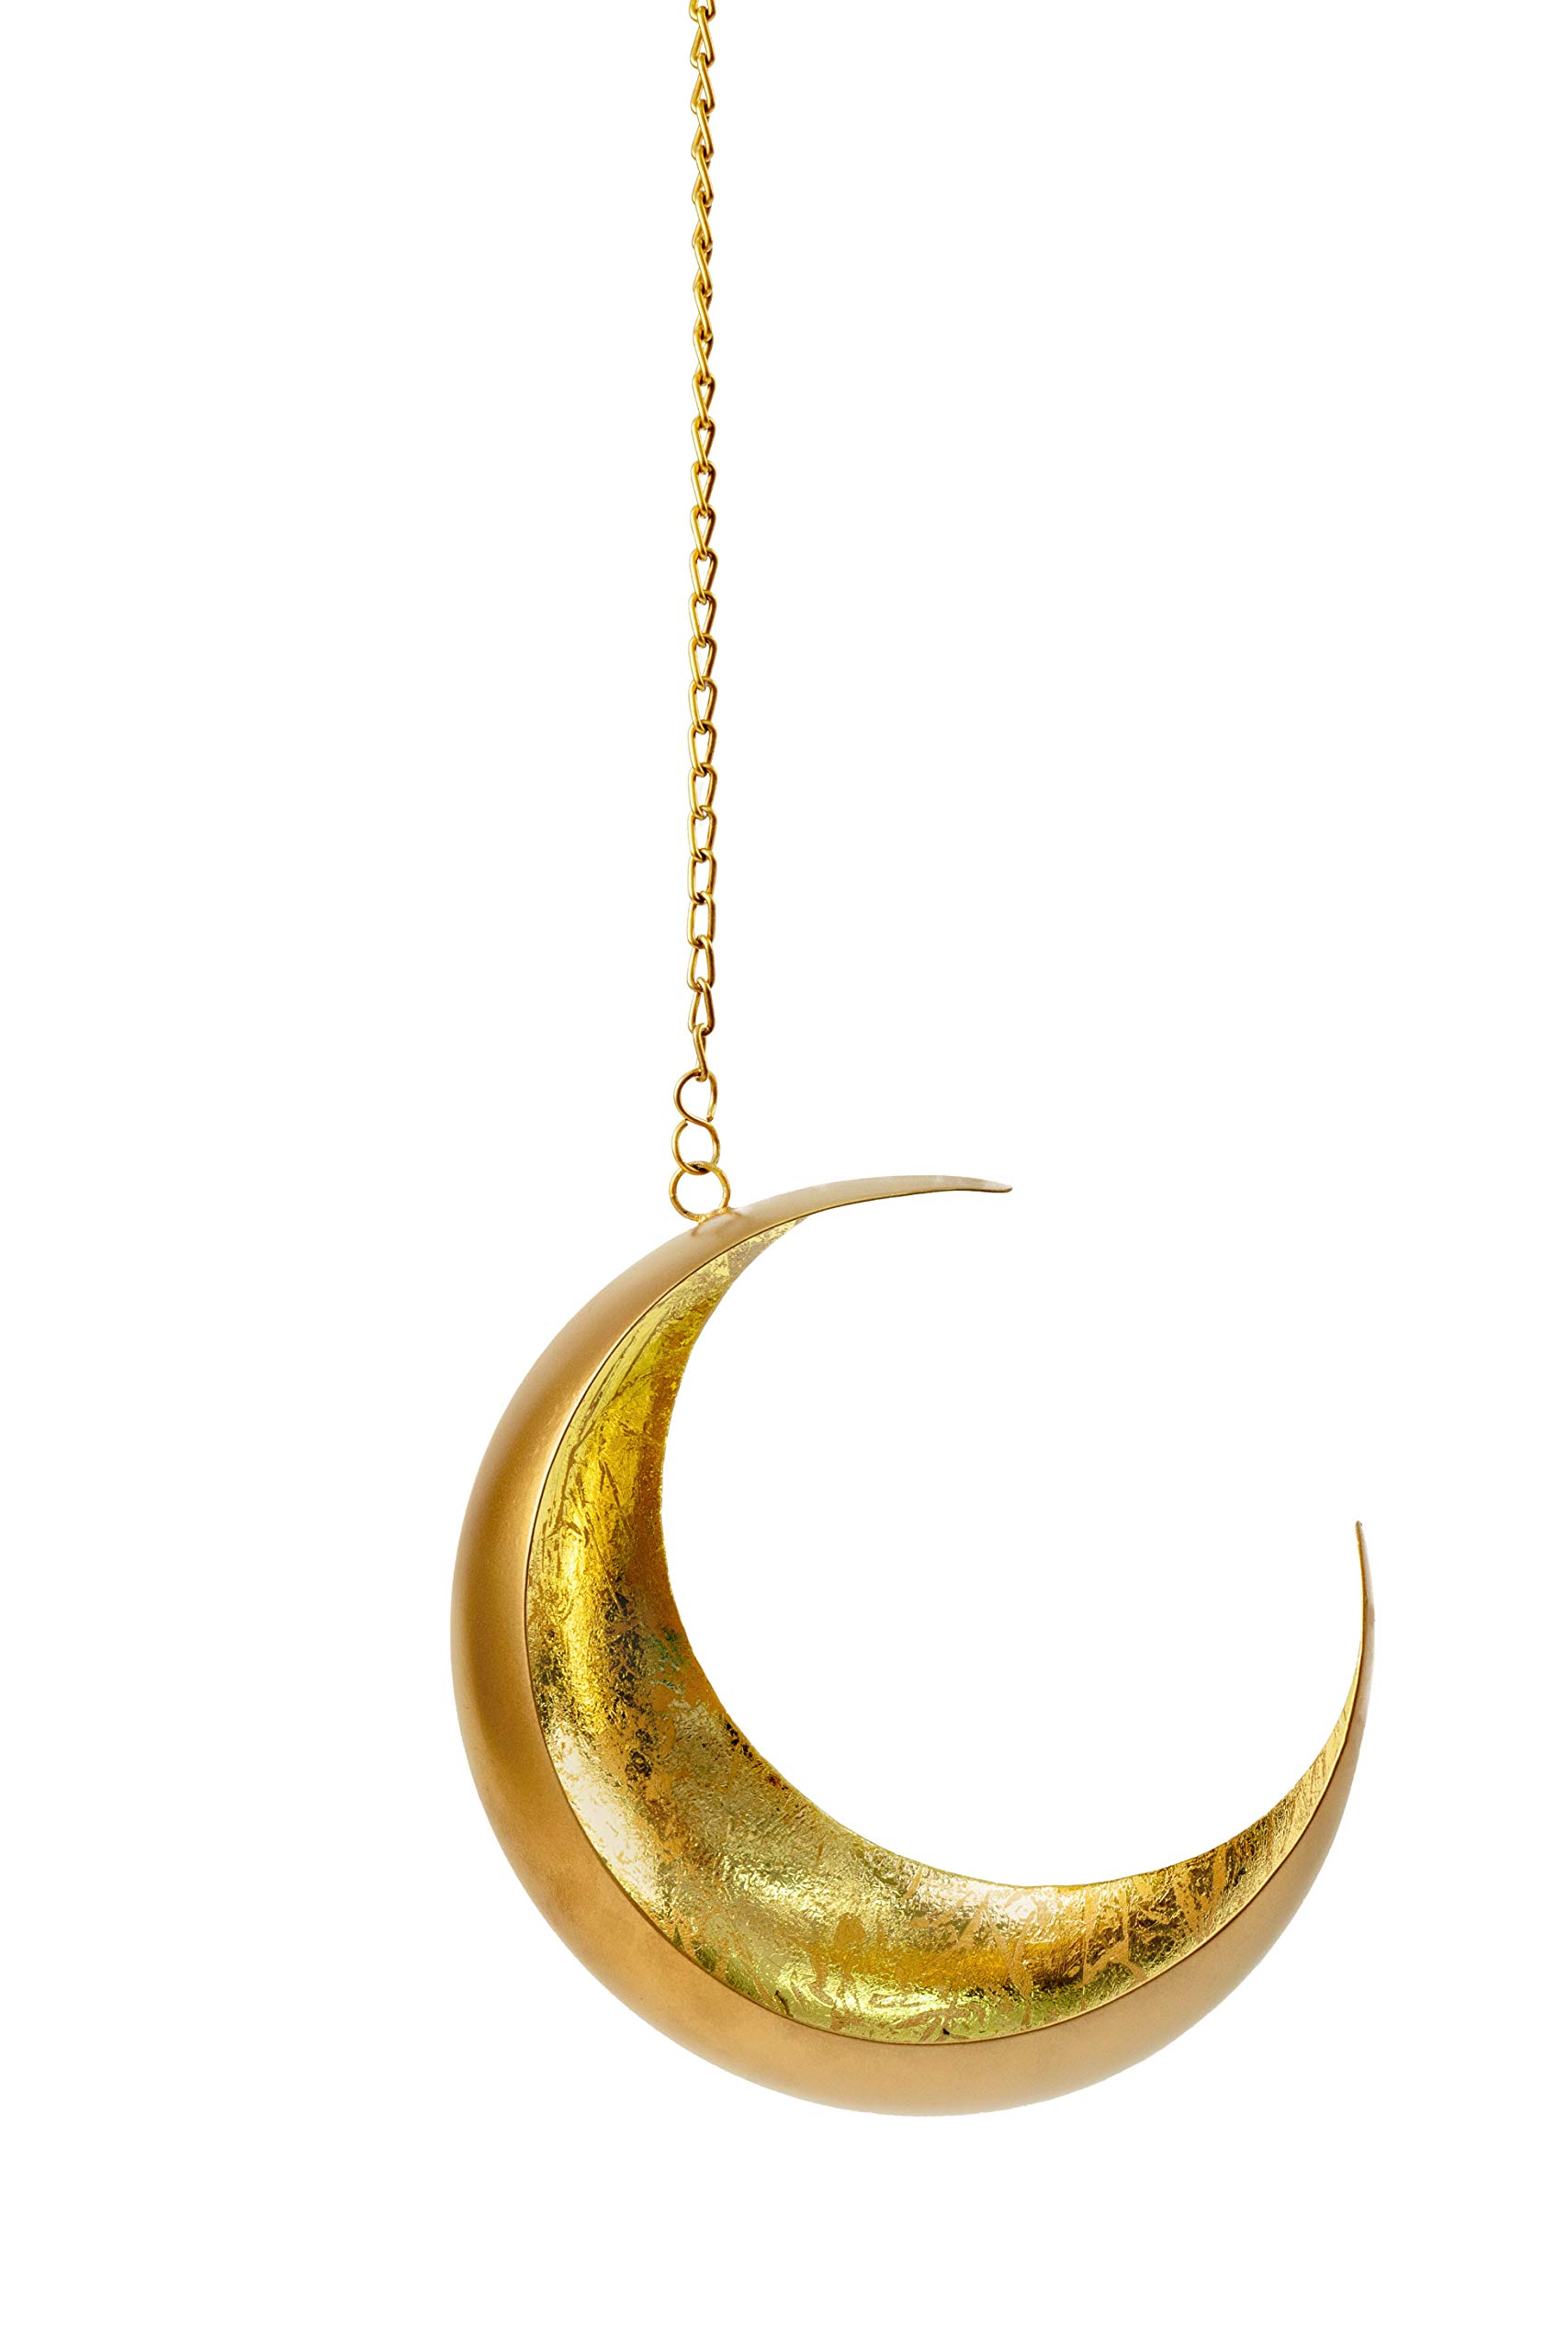 Jazzy Soul Moon Decor Art Hanging - Boho Shabby Chic Home Decor Eclectic Accessory: Votive Tea Candle Holder, Cone Incense Burner, Metal Plant Hanger and Nursery Wall Design